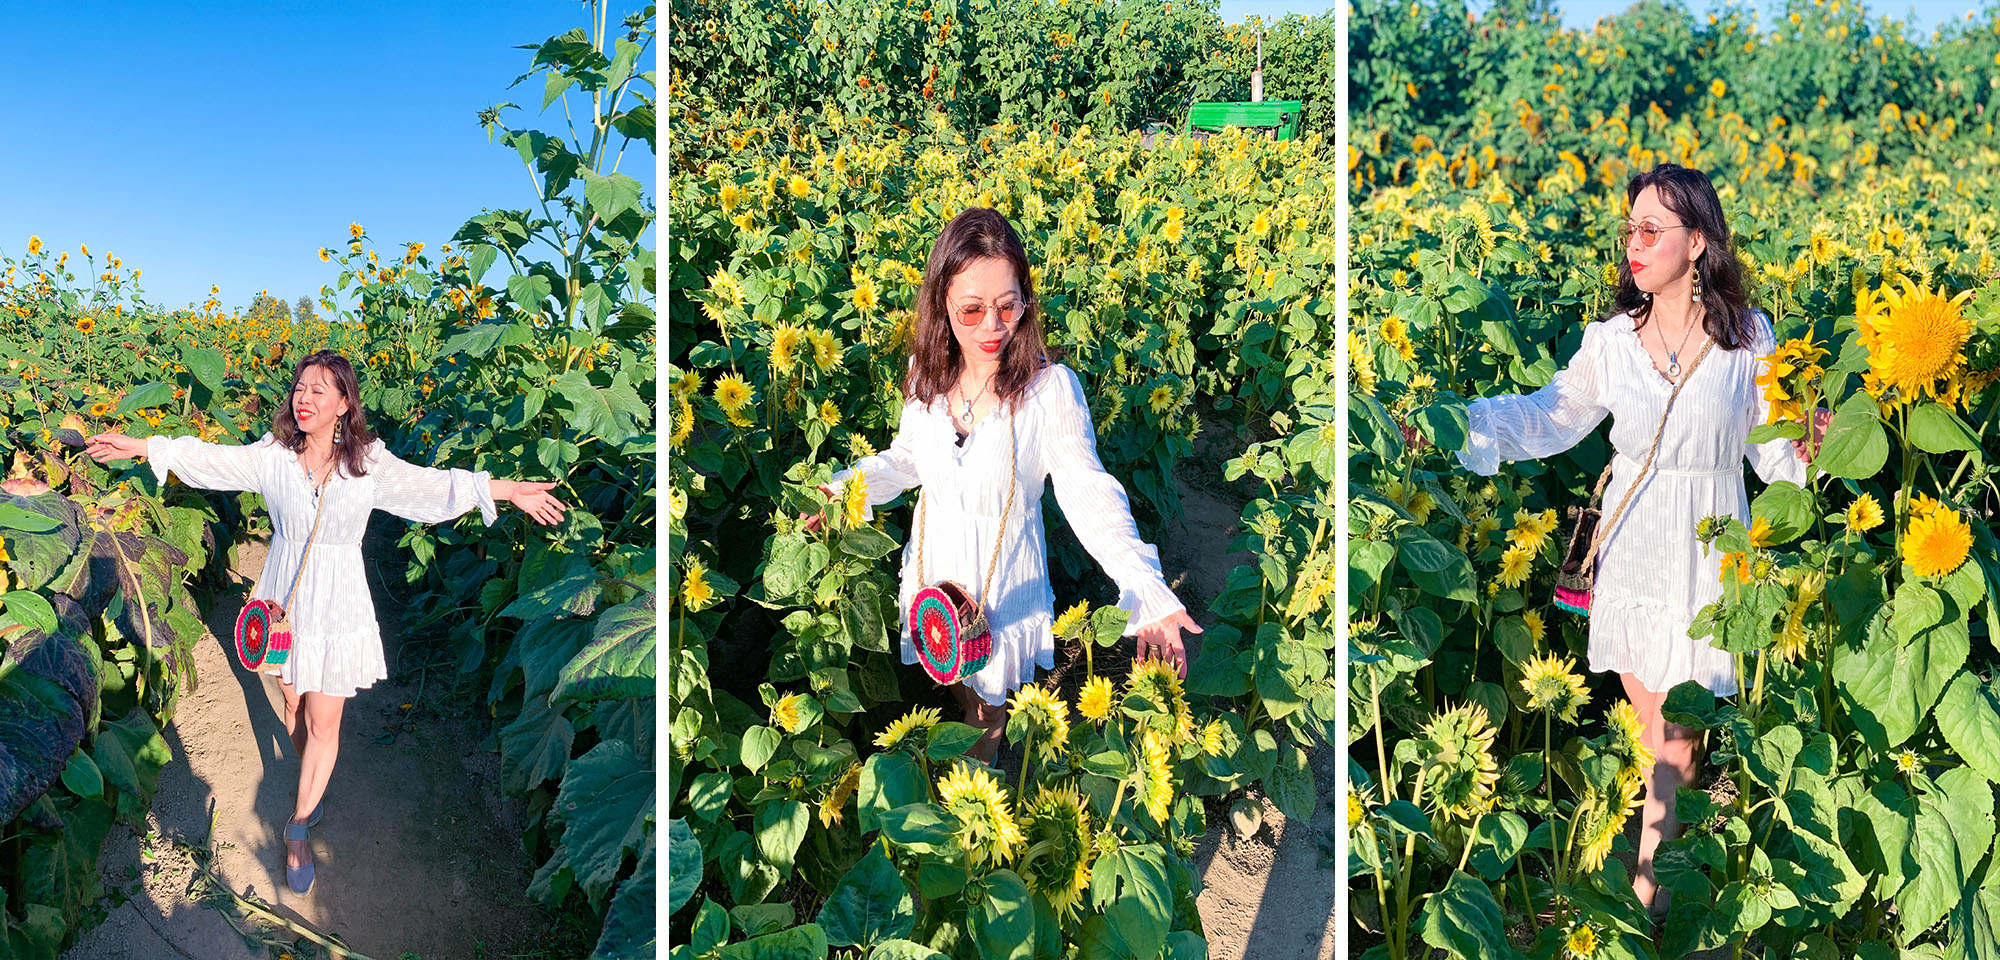 What to wear in Sunflower farm